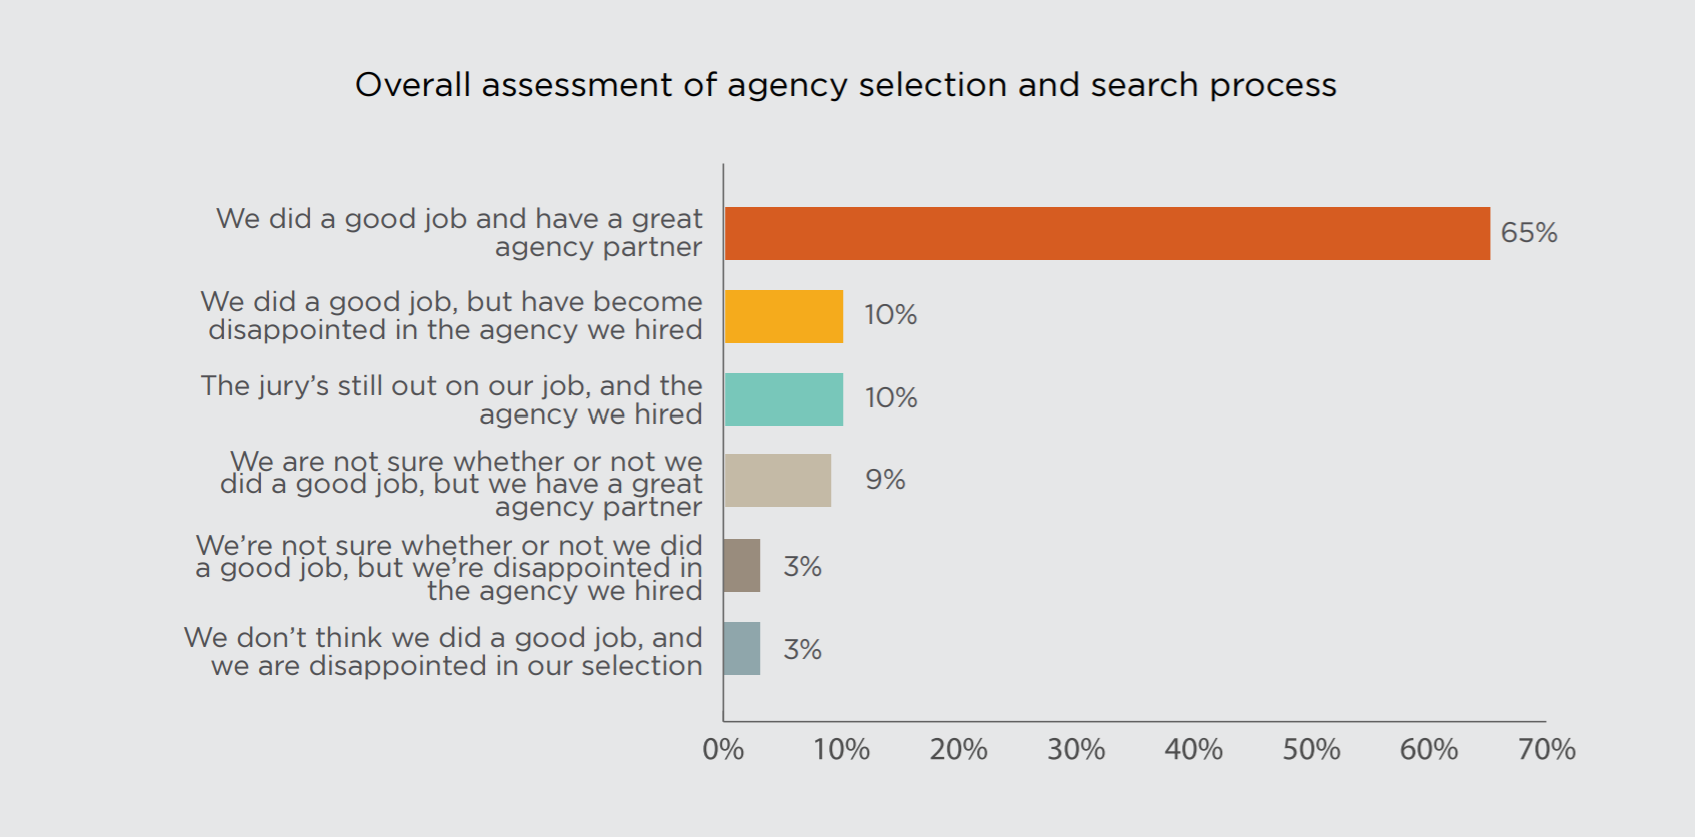 Evaluation of Agency Search Process